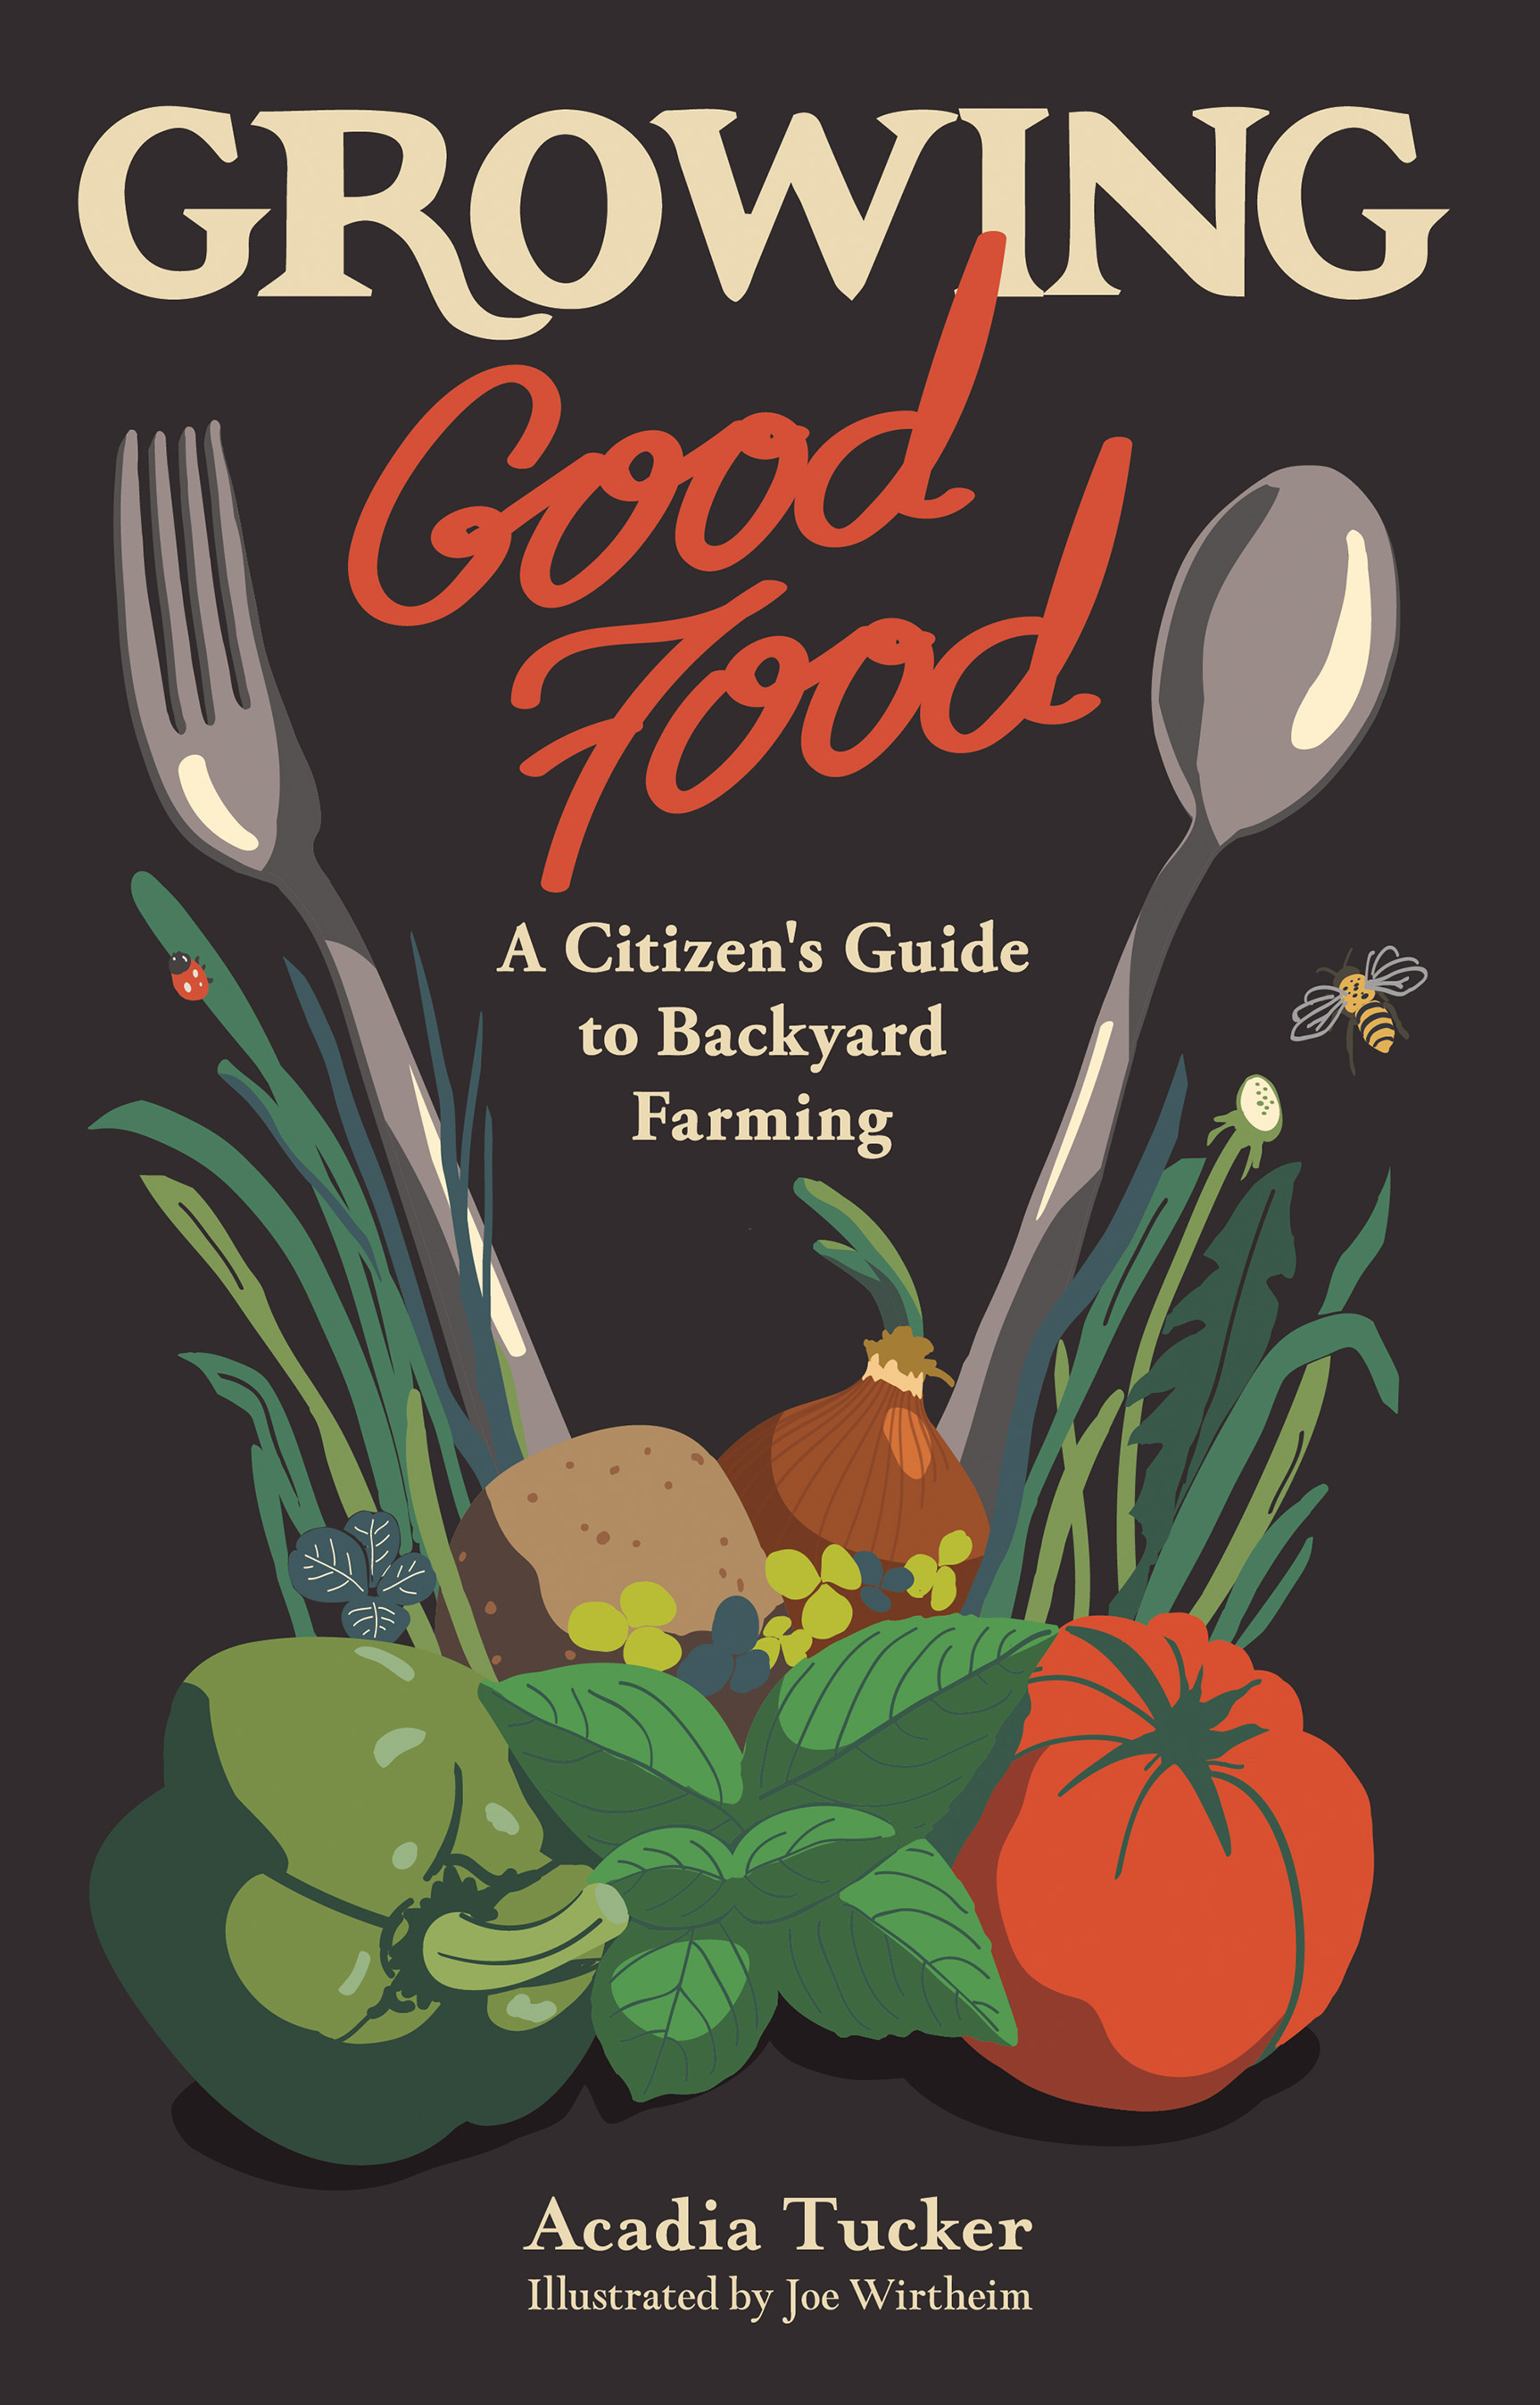 The Growing Good Food cover